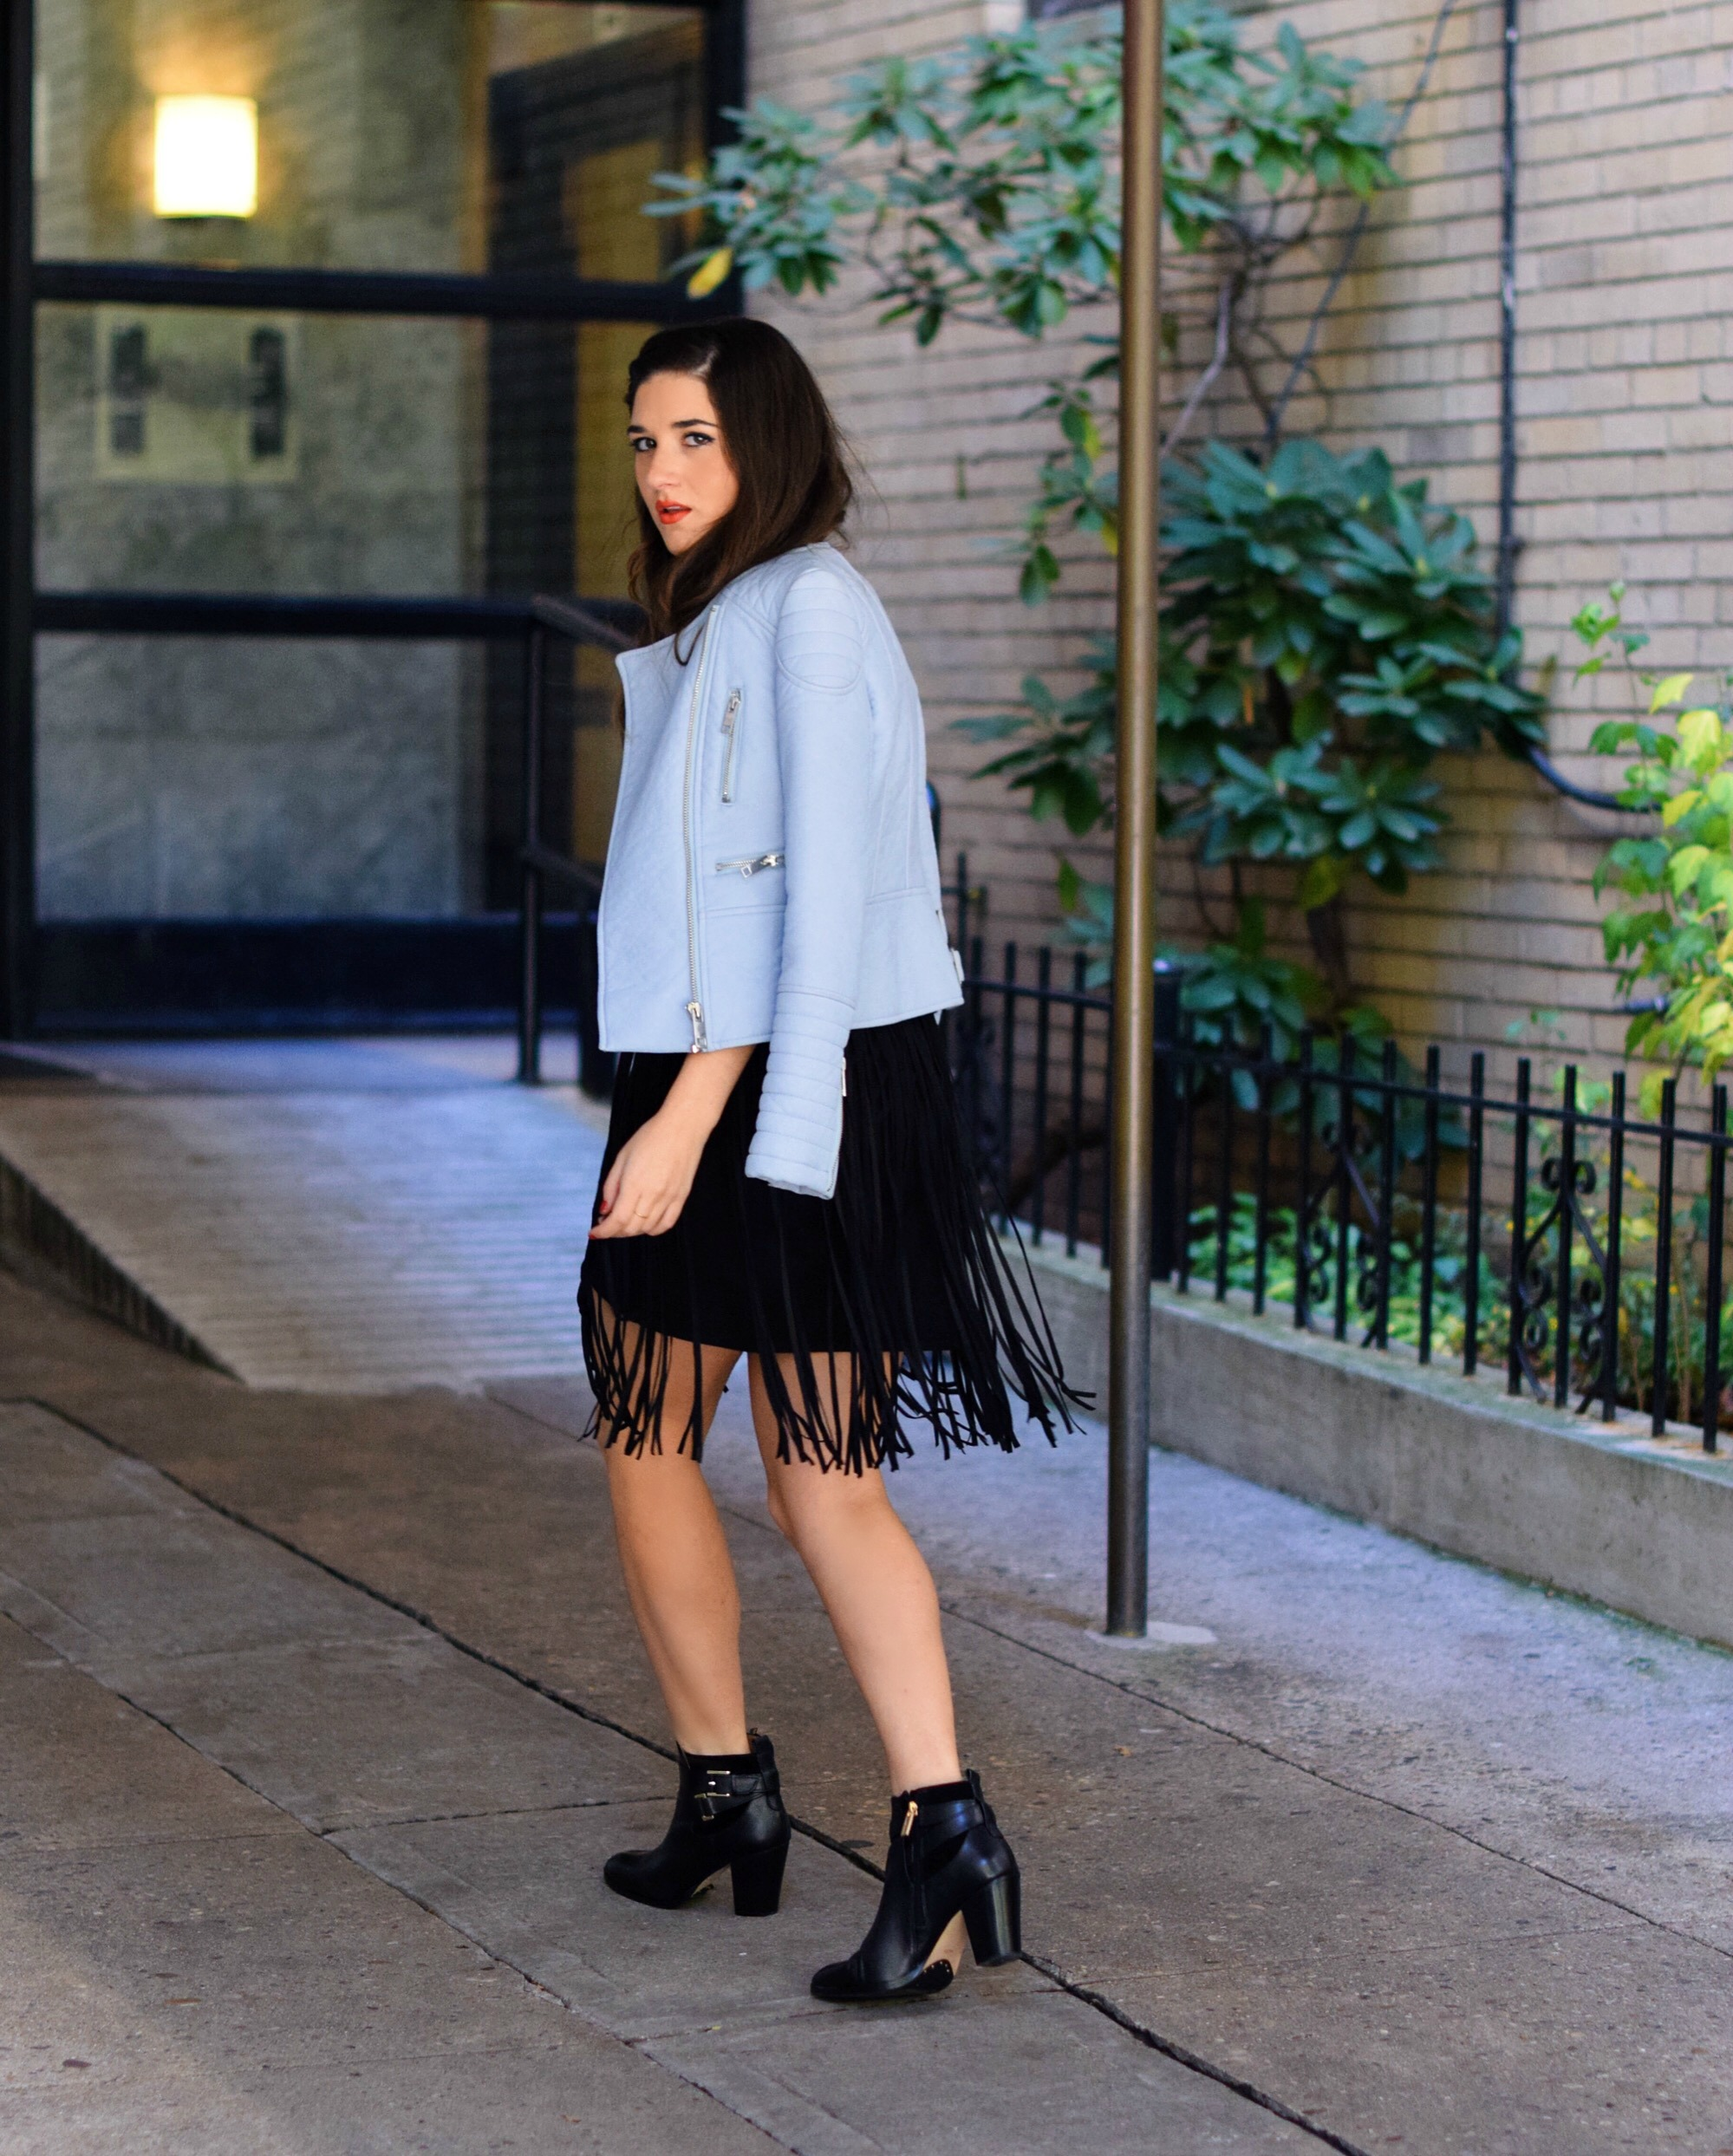 Black Fringe Dress Trèscool Louboutins & Love Fashion Blog Esther Santer NYC Street Style Blogger Baby Blue Leather Jacket Zara Hair Girl Model Photoshoot Booties Nordstrom Outfit OOTD Red Nail Polish Shop Fall Look Pretty Inspo Shoes Winter Trendy.jpg